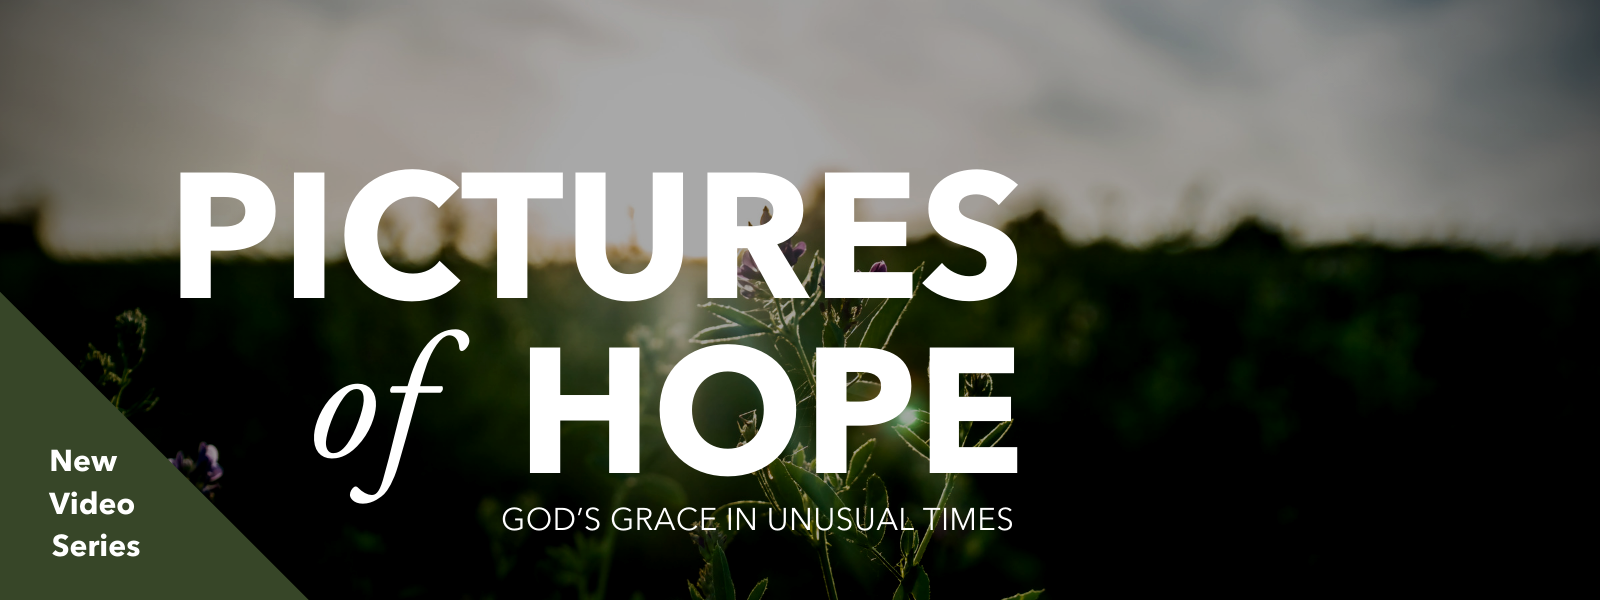 Pictures of Hope Video Series | God's Grace in Unusual Times